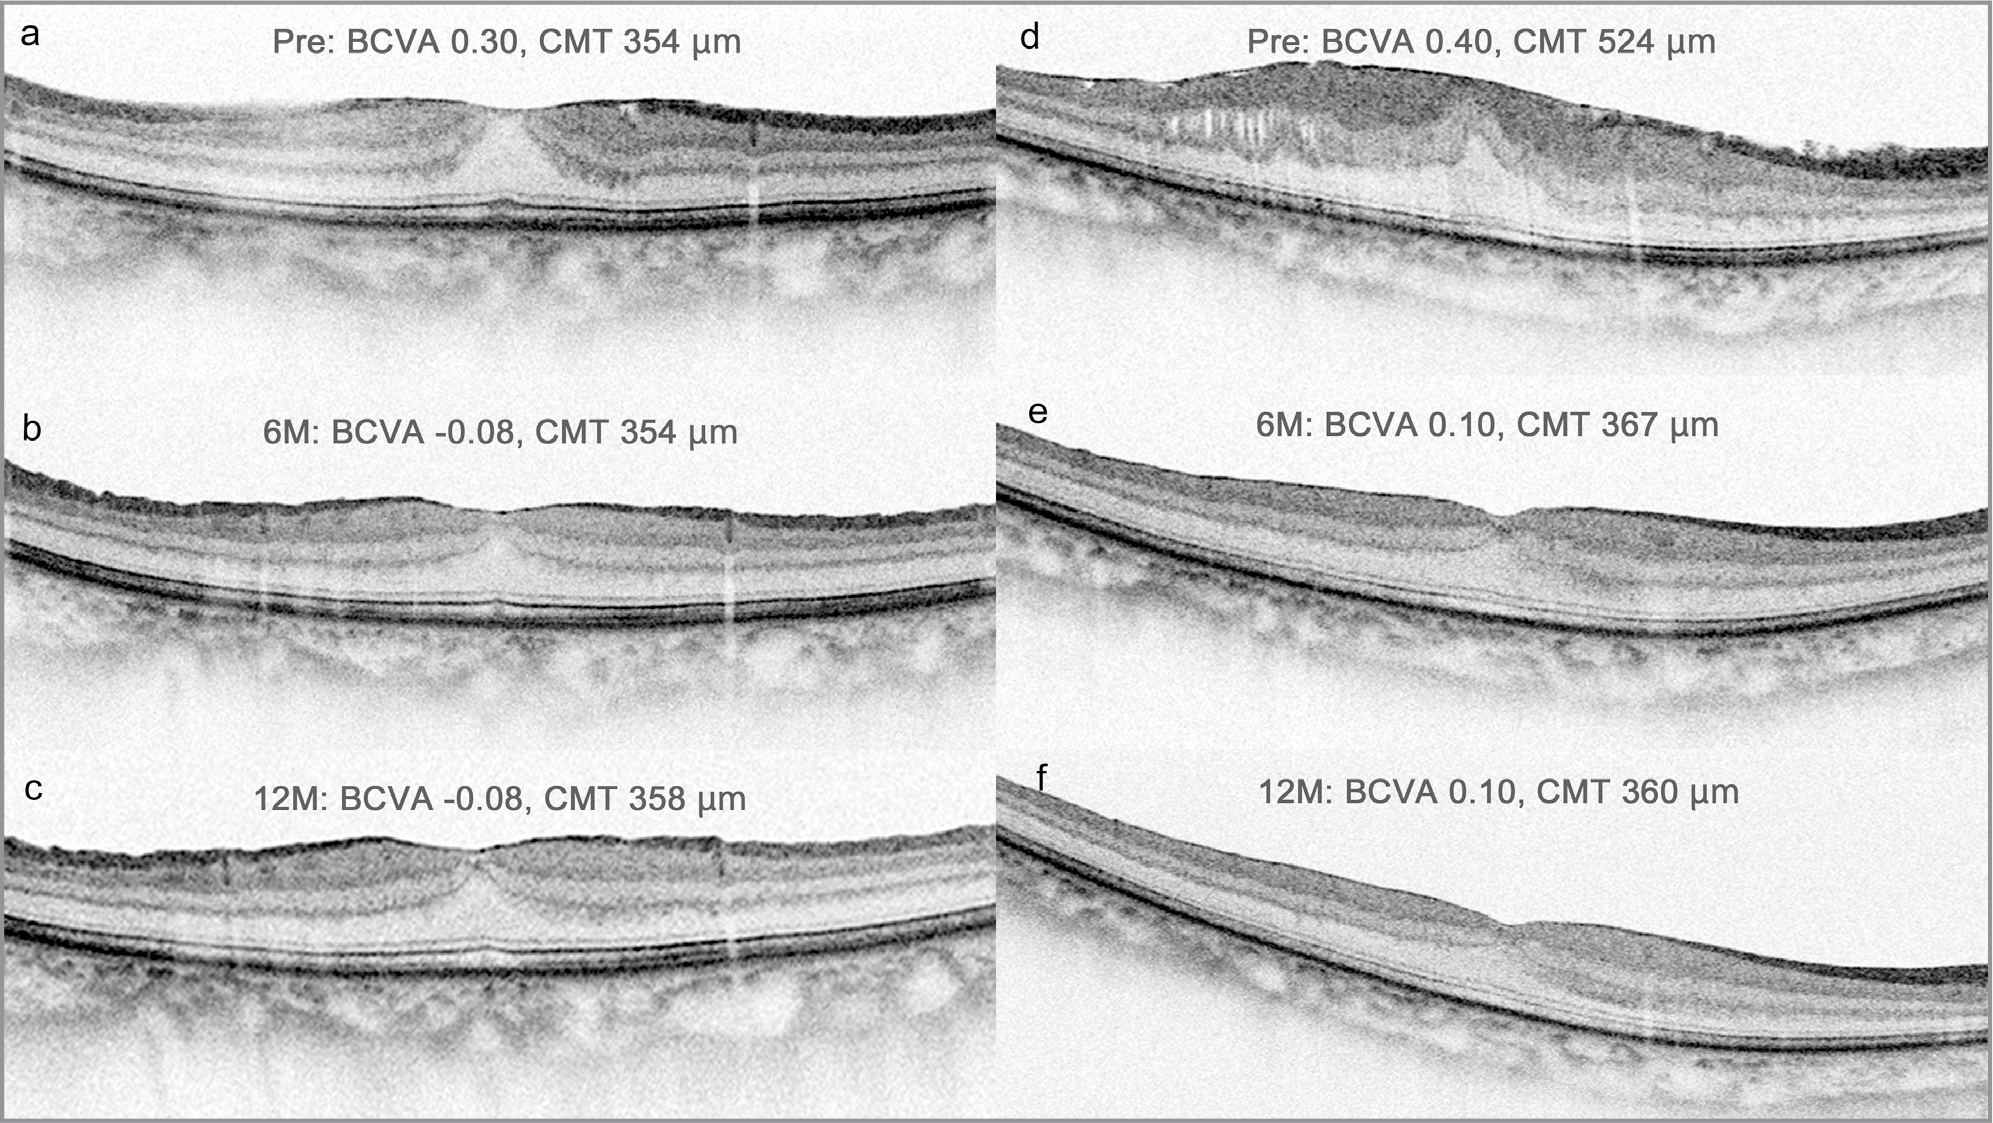 (a–c) Optical coherence tomography (OCT) images of a 65-year-old woman before (a) and at 6 (b) and 12 (c) months after vitrectomy for the repair of an epiretinal membrane (ERM) without an ectopic inner foveal layer (EIFL). Best-corrected visual acuities (BCVAs) in logarithm of the minimum angle of resolution (logMAR) units before and at 6 and 12 months after vitrectomy were 0.30, −0.08, and −0.08, respectively. Her central macular thickness (CMT) measurements were 354 µm, 354 µm, and 358 µm before and at 6 and 12 months after vitrectomy, respectively. (d–f) OCT images of a 54-year-old woman before (d) and at 6 (e) and 12 (f) months after vitrectomy to repair an ERM with an EIFL. The EIFL resolved postoperatively (e and f). BCVAs in logMAR units before and at 6 and 12 months after vitrectomy were 0.40, 0.10, and 0.10, respectively; CMTs measured 524 µm, 367 µm, and 360 µm, respectively.